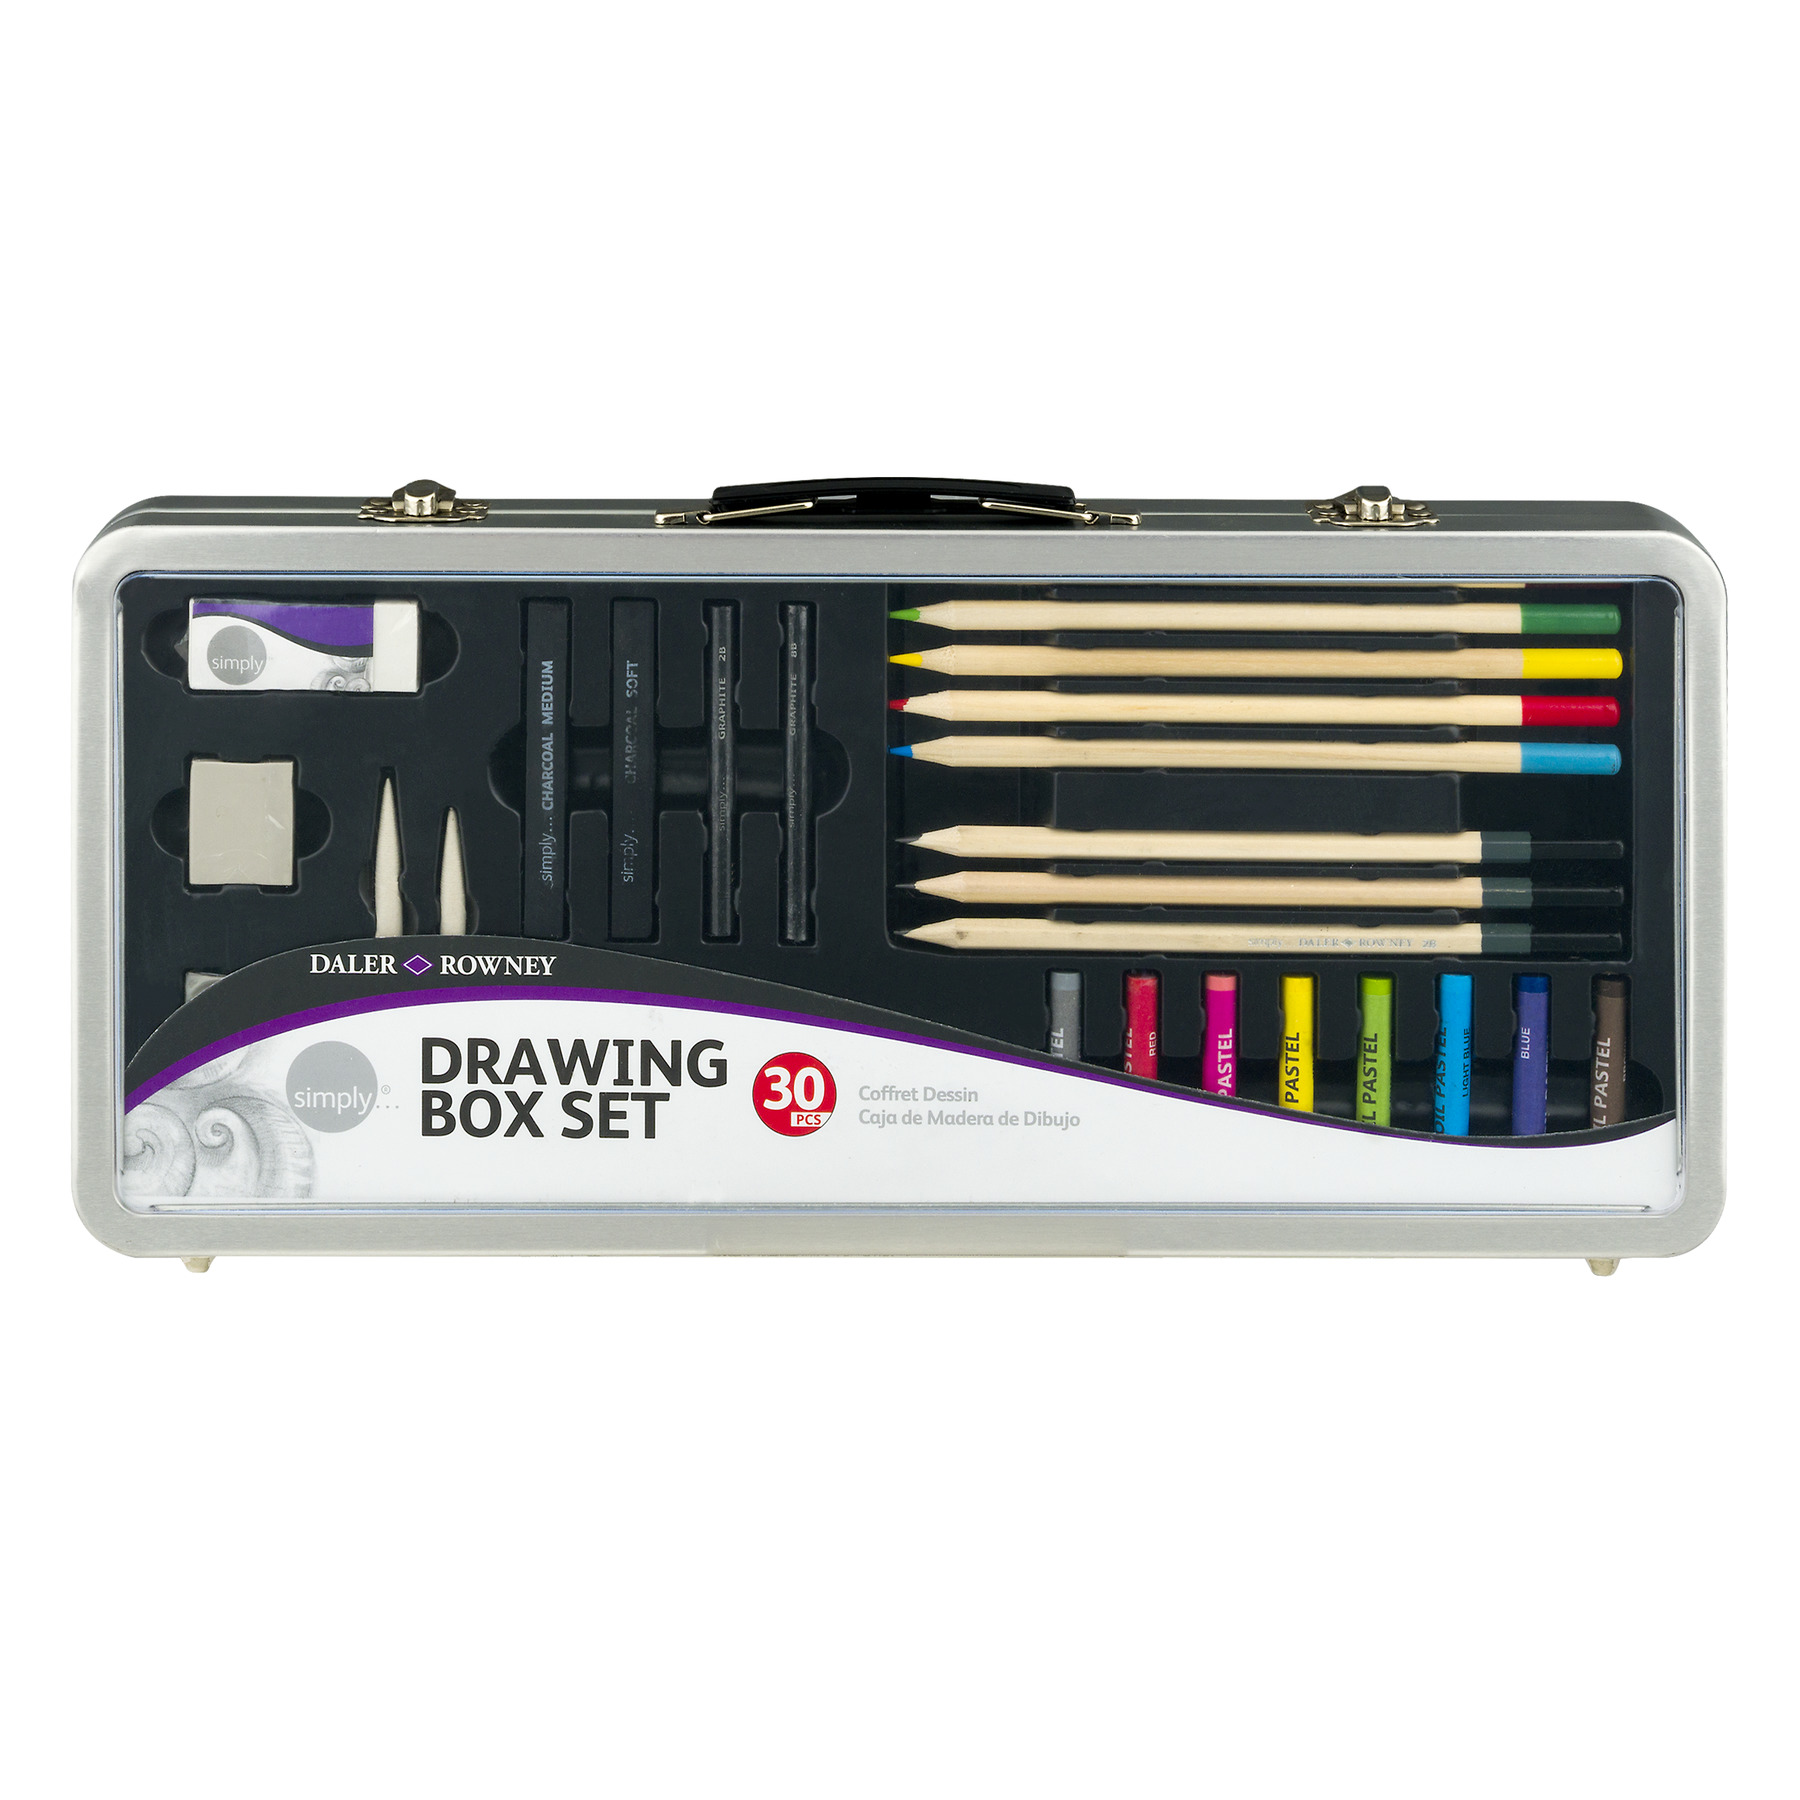 Daler - Rowney Simply Drawing Box Set - 30 PC, 30.0 PIECE(S)